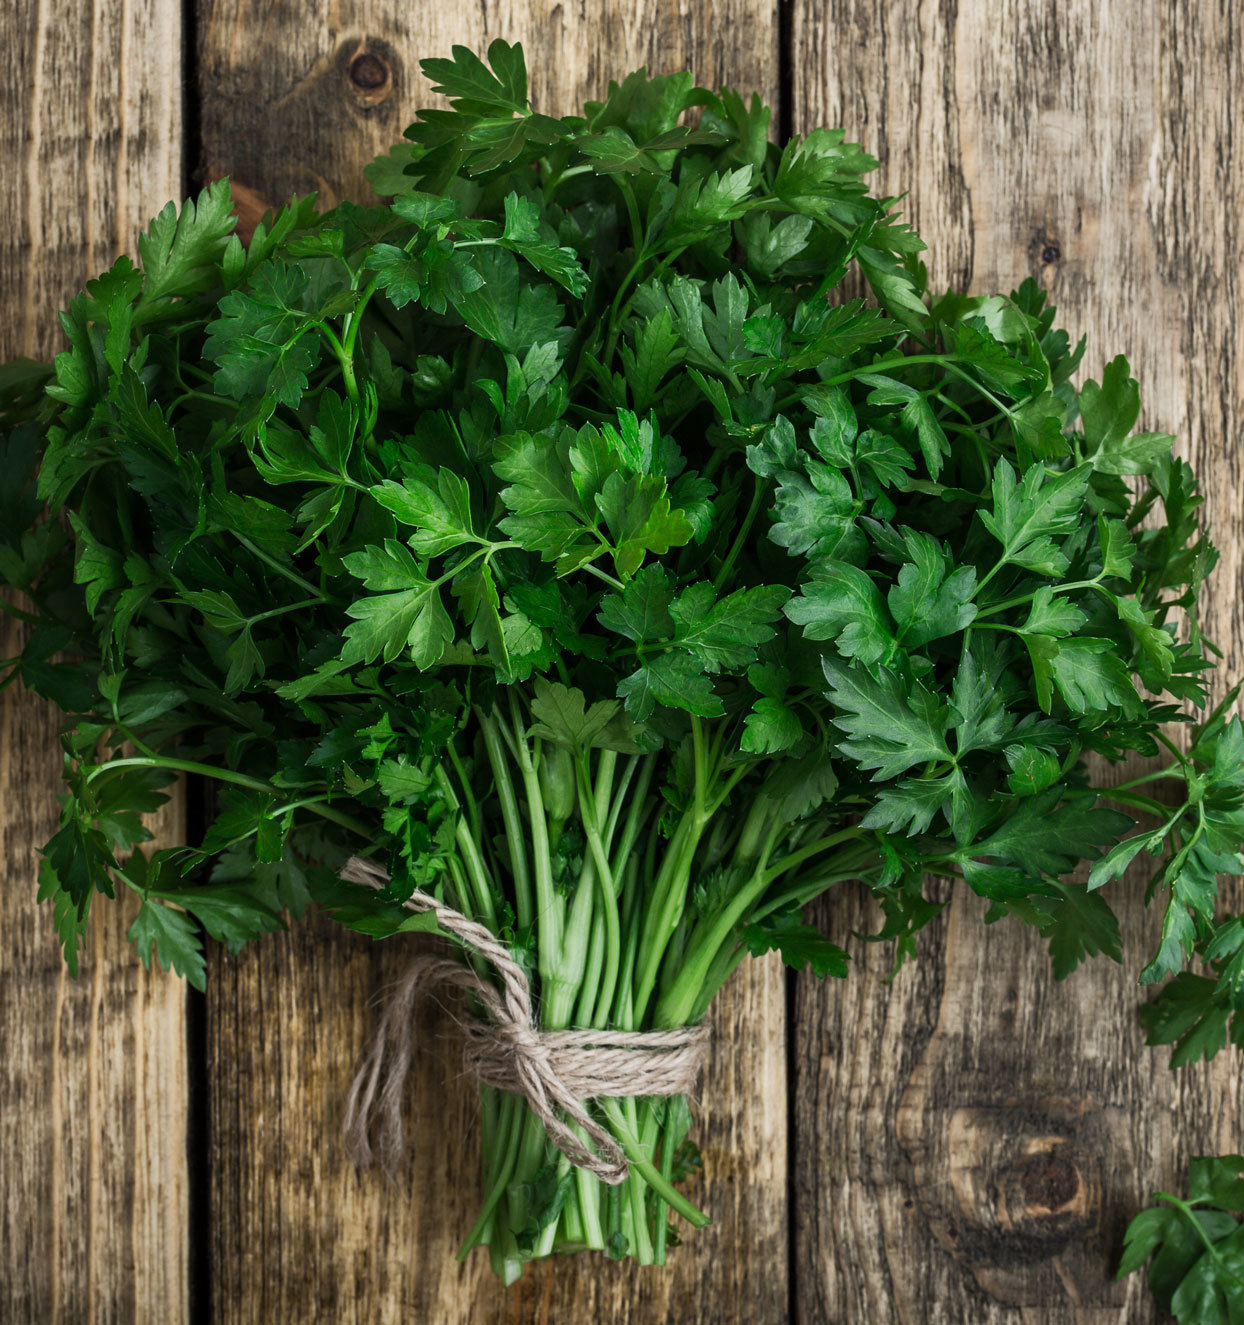 Our Test Kitchen Swears by This Hack for Bringing Wilted Herbs Back to Life